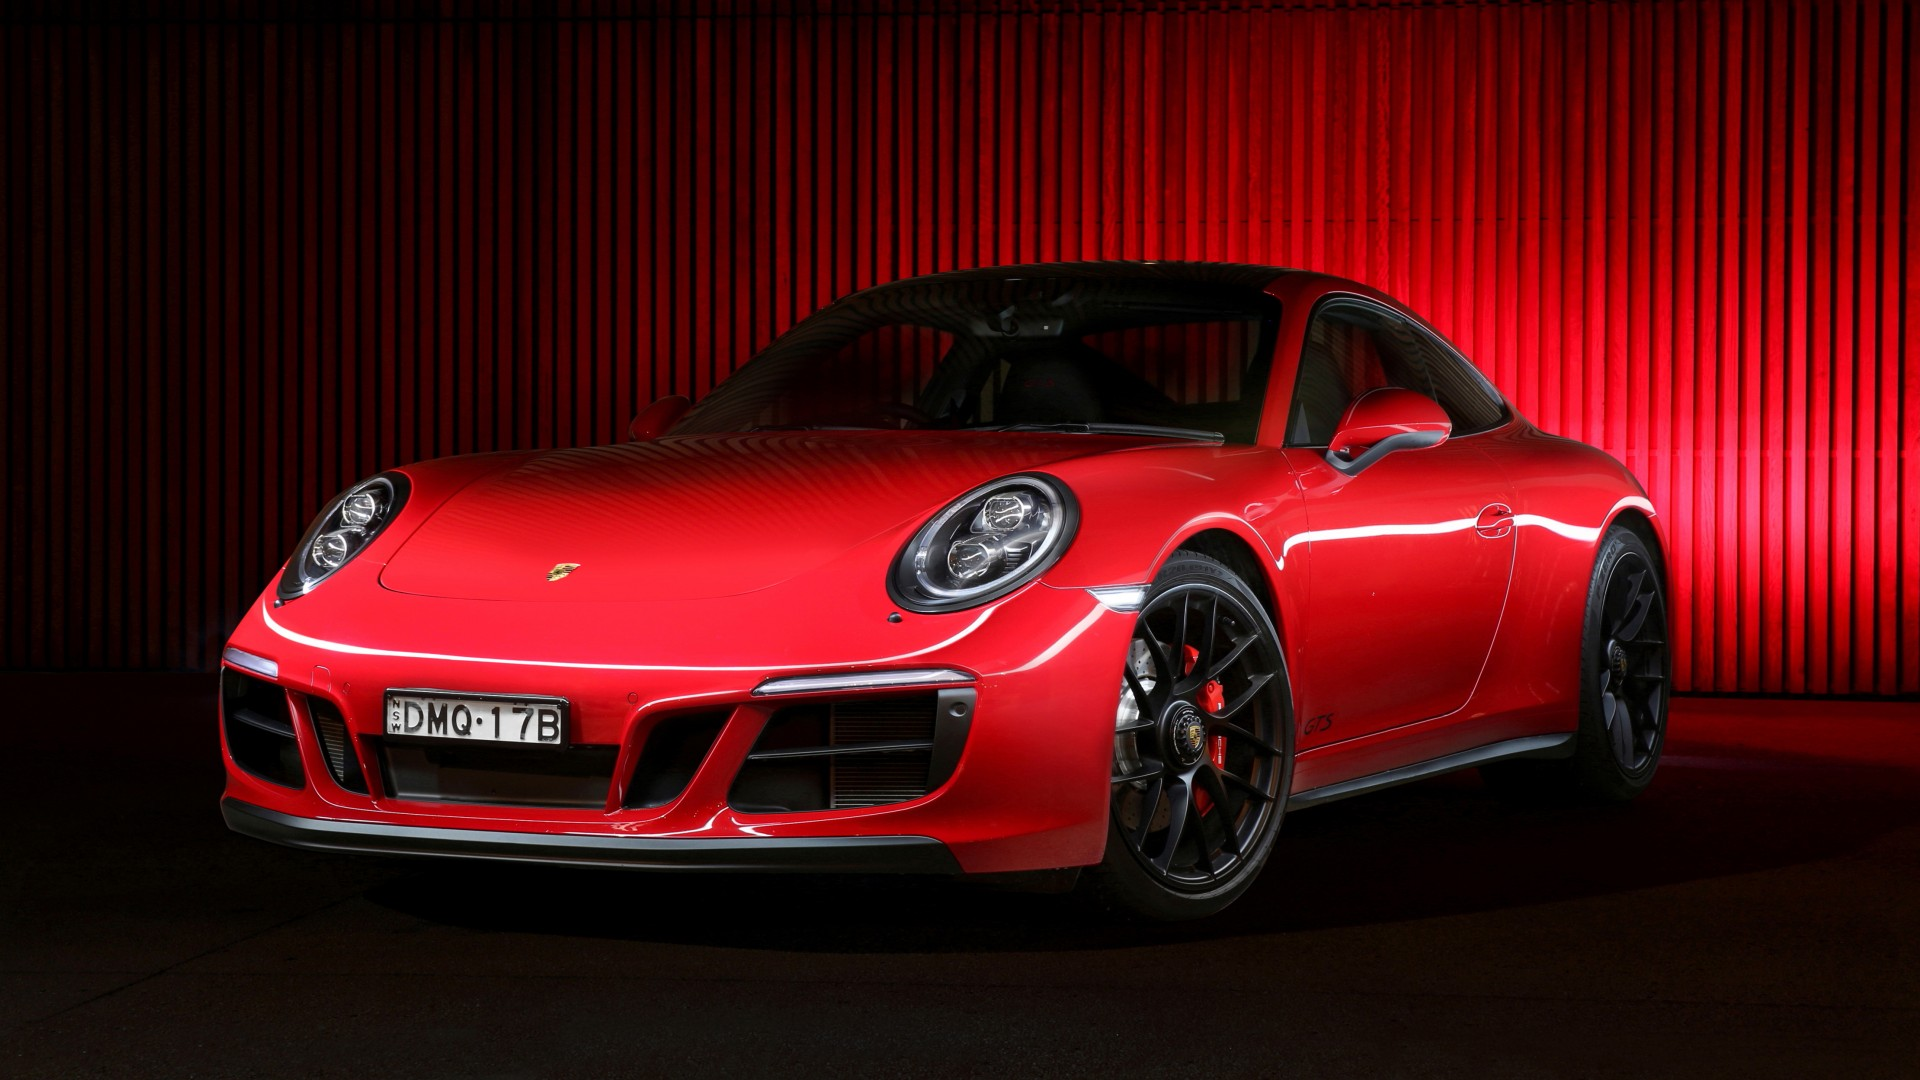 3d Wallpaper For Ipad 4 2017 Porsche 911 Carrera 4 Gts Coupe 4k Wallpapers Hd